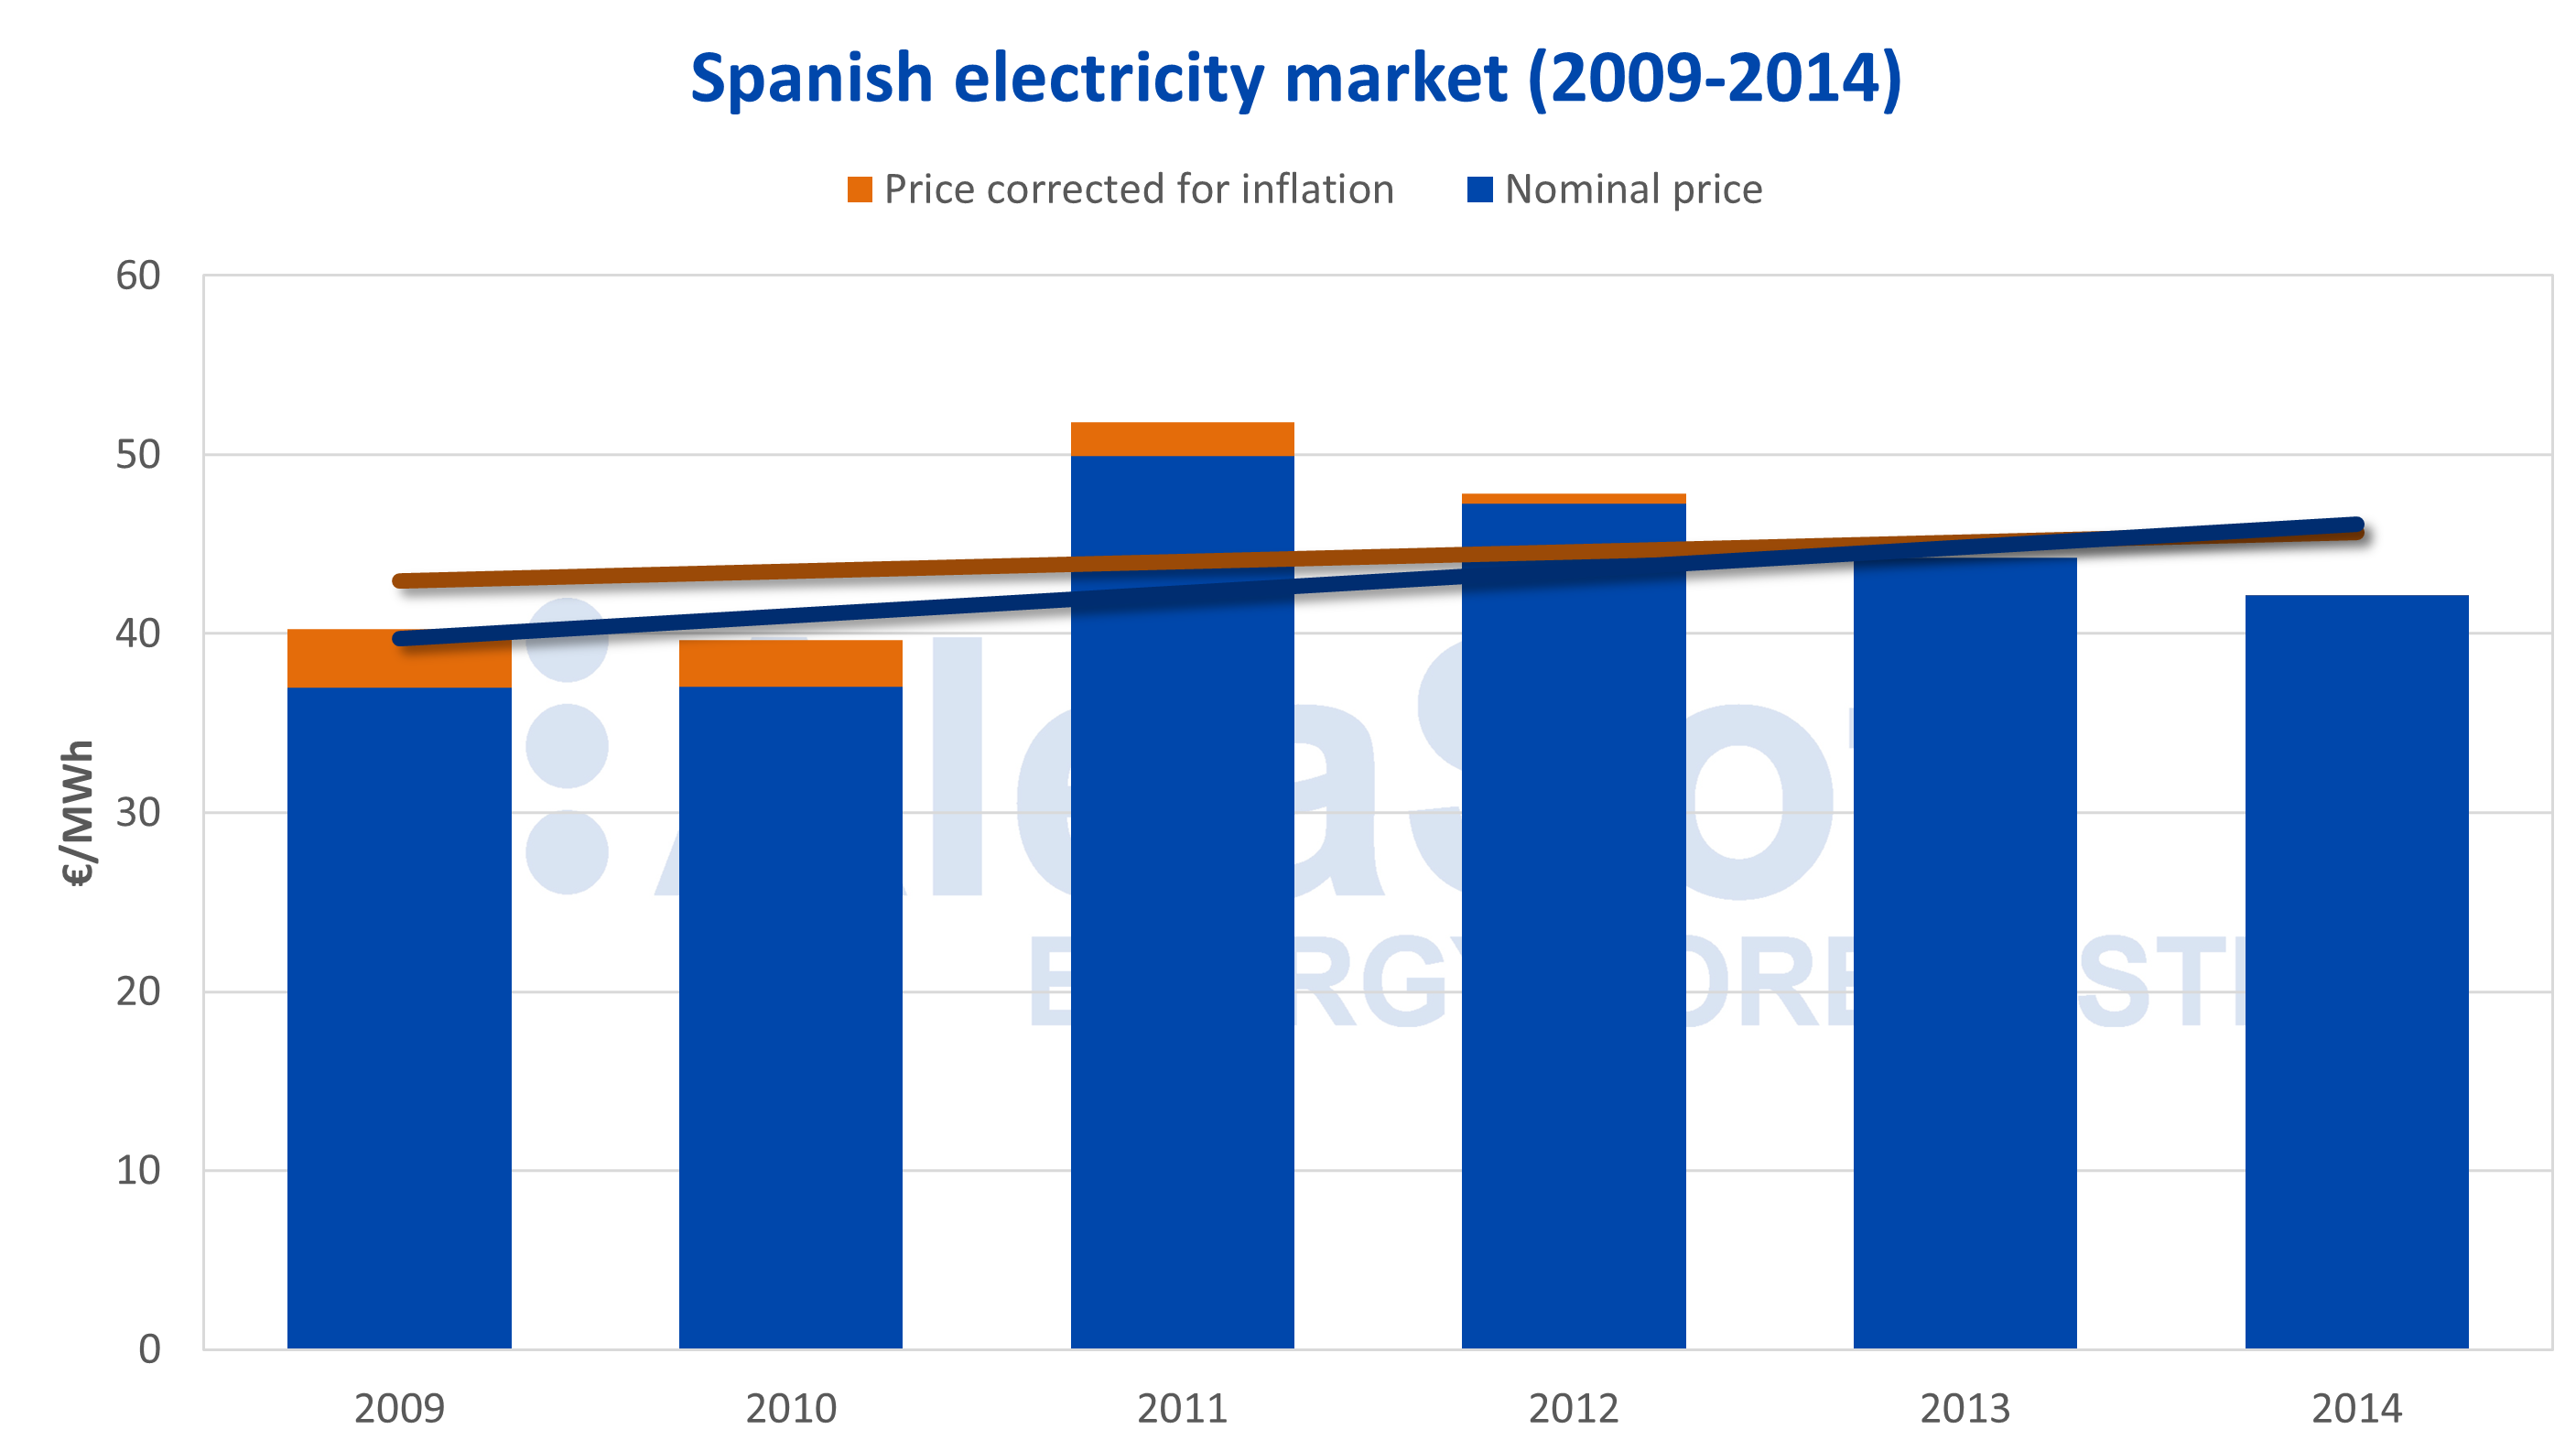 AleaSoft - Spanish electricity market price corrected inflation CPI